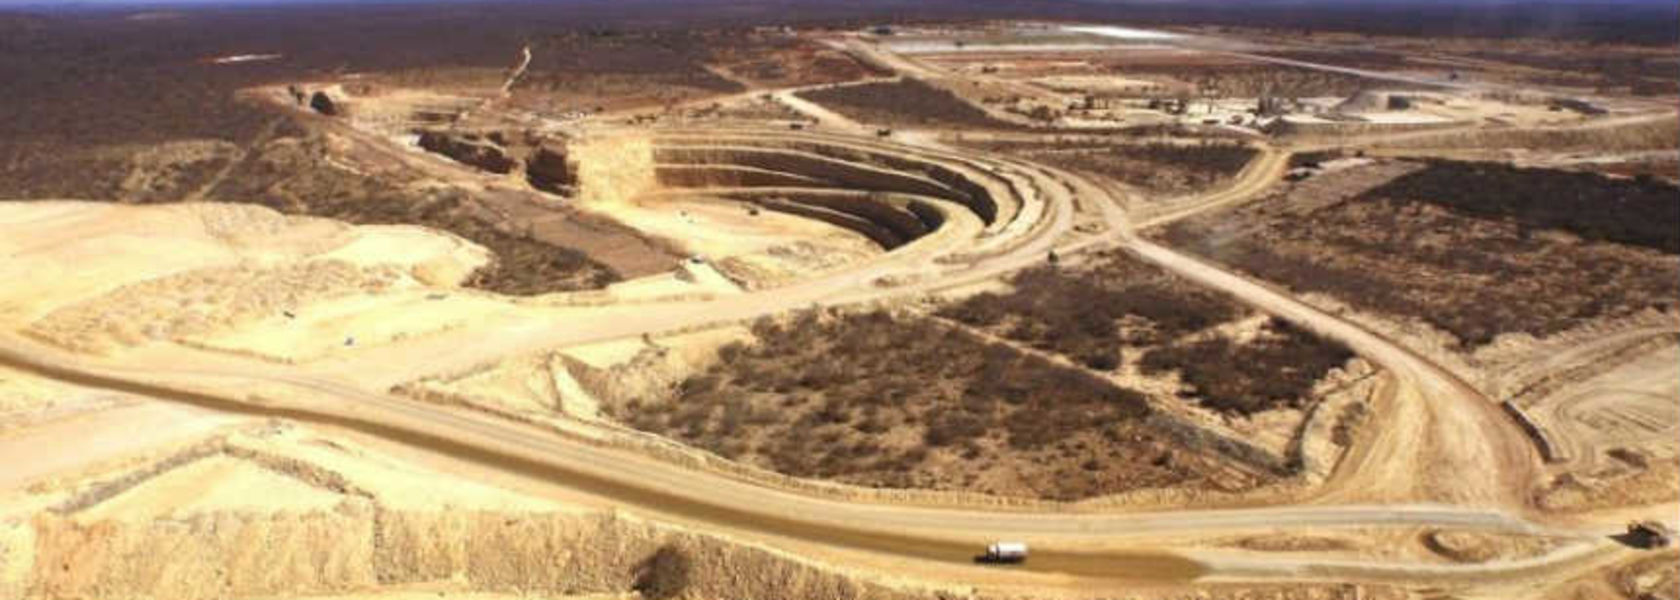 Weatherly to spend US$3M on mine repair